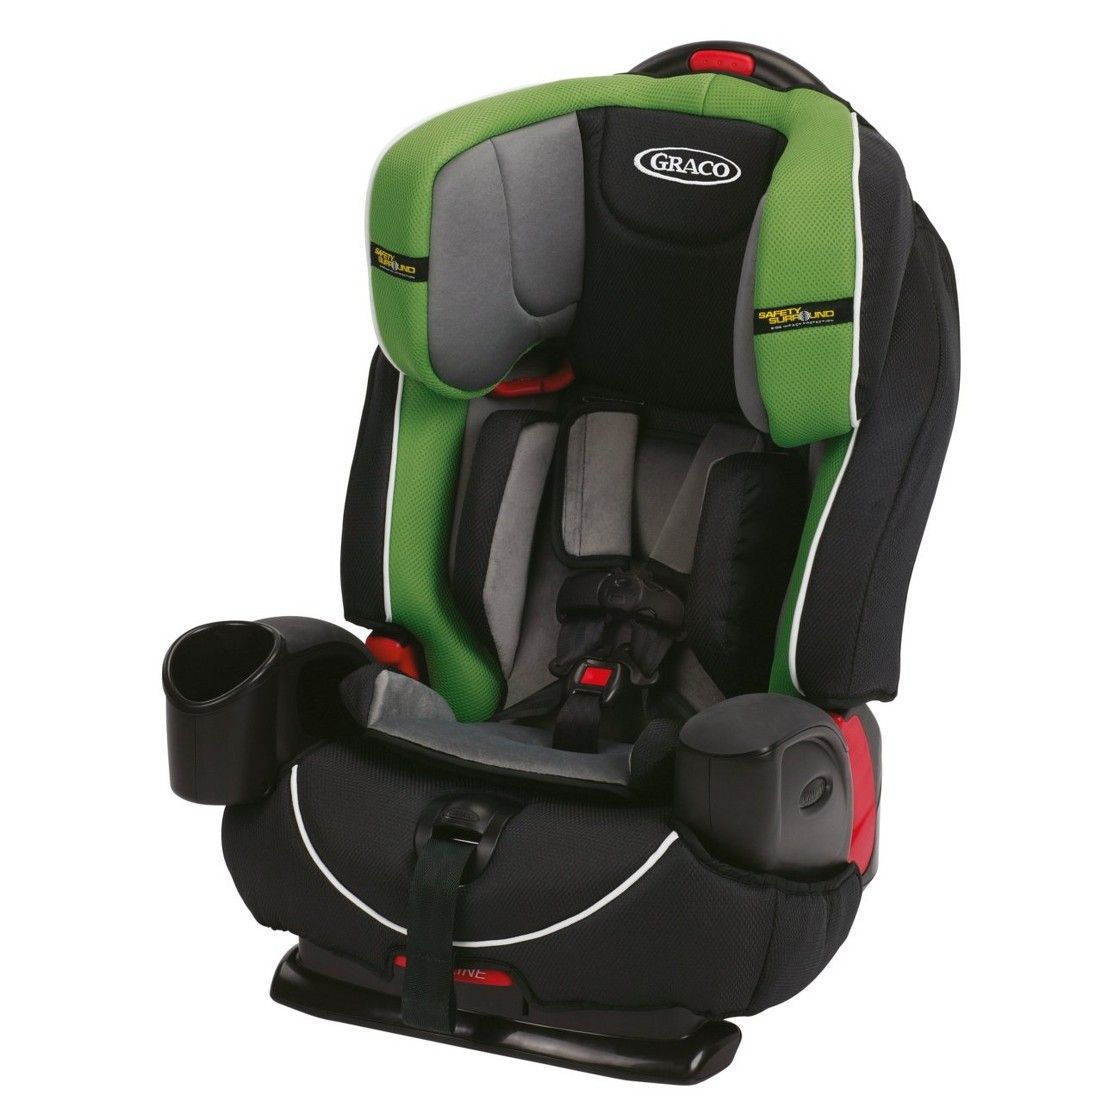 Graco Nautilus 3-in-1 Car Seat with Safety Surround | cat ...